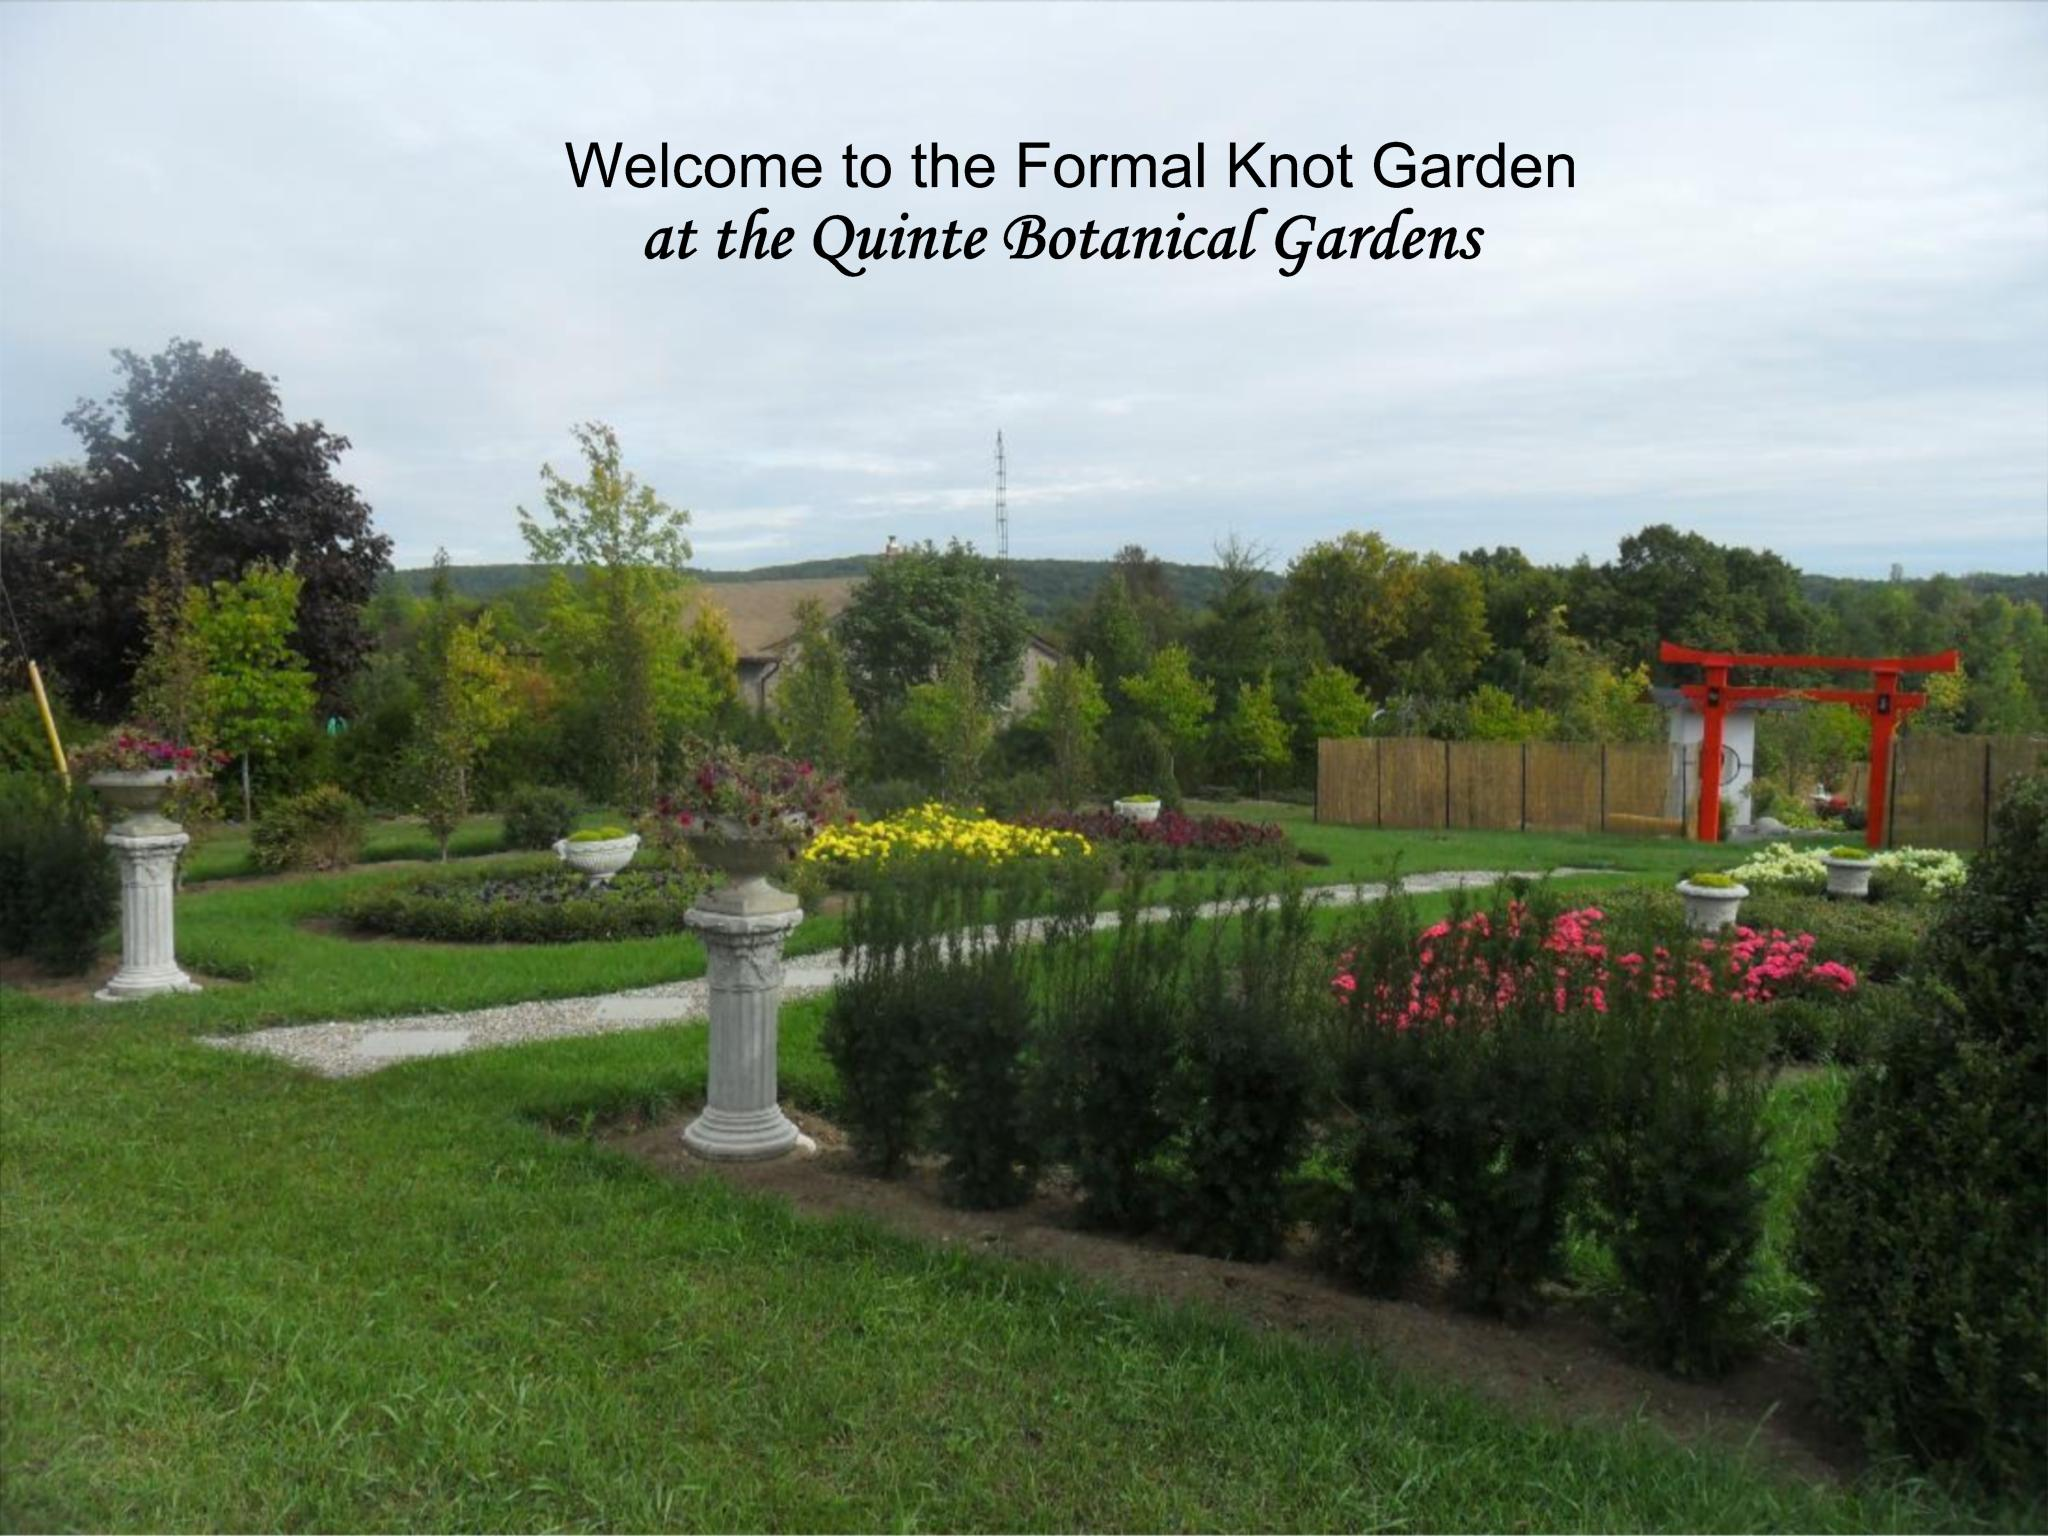 The Formal Knot Garden